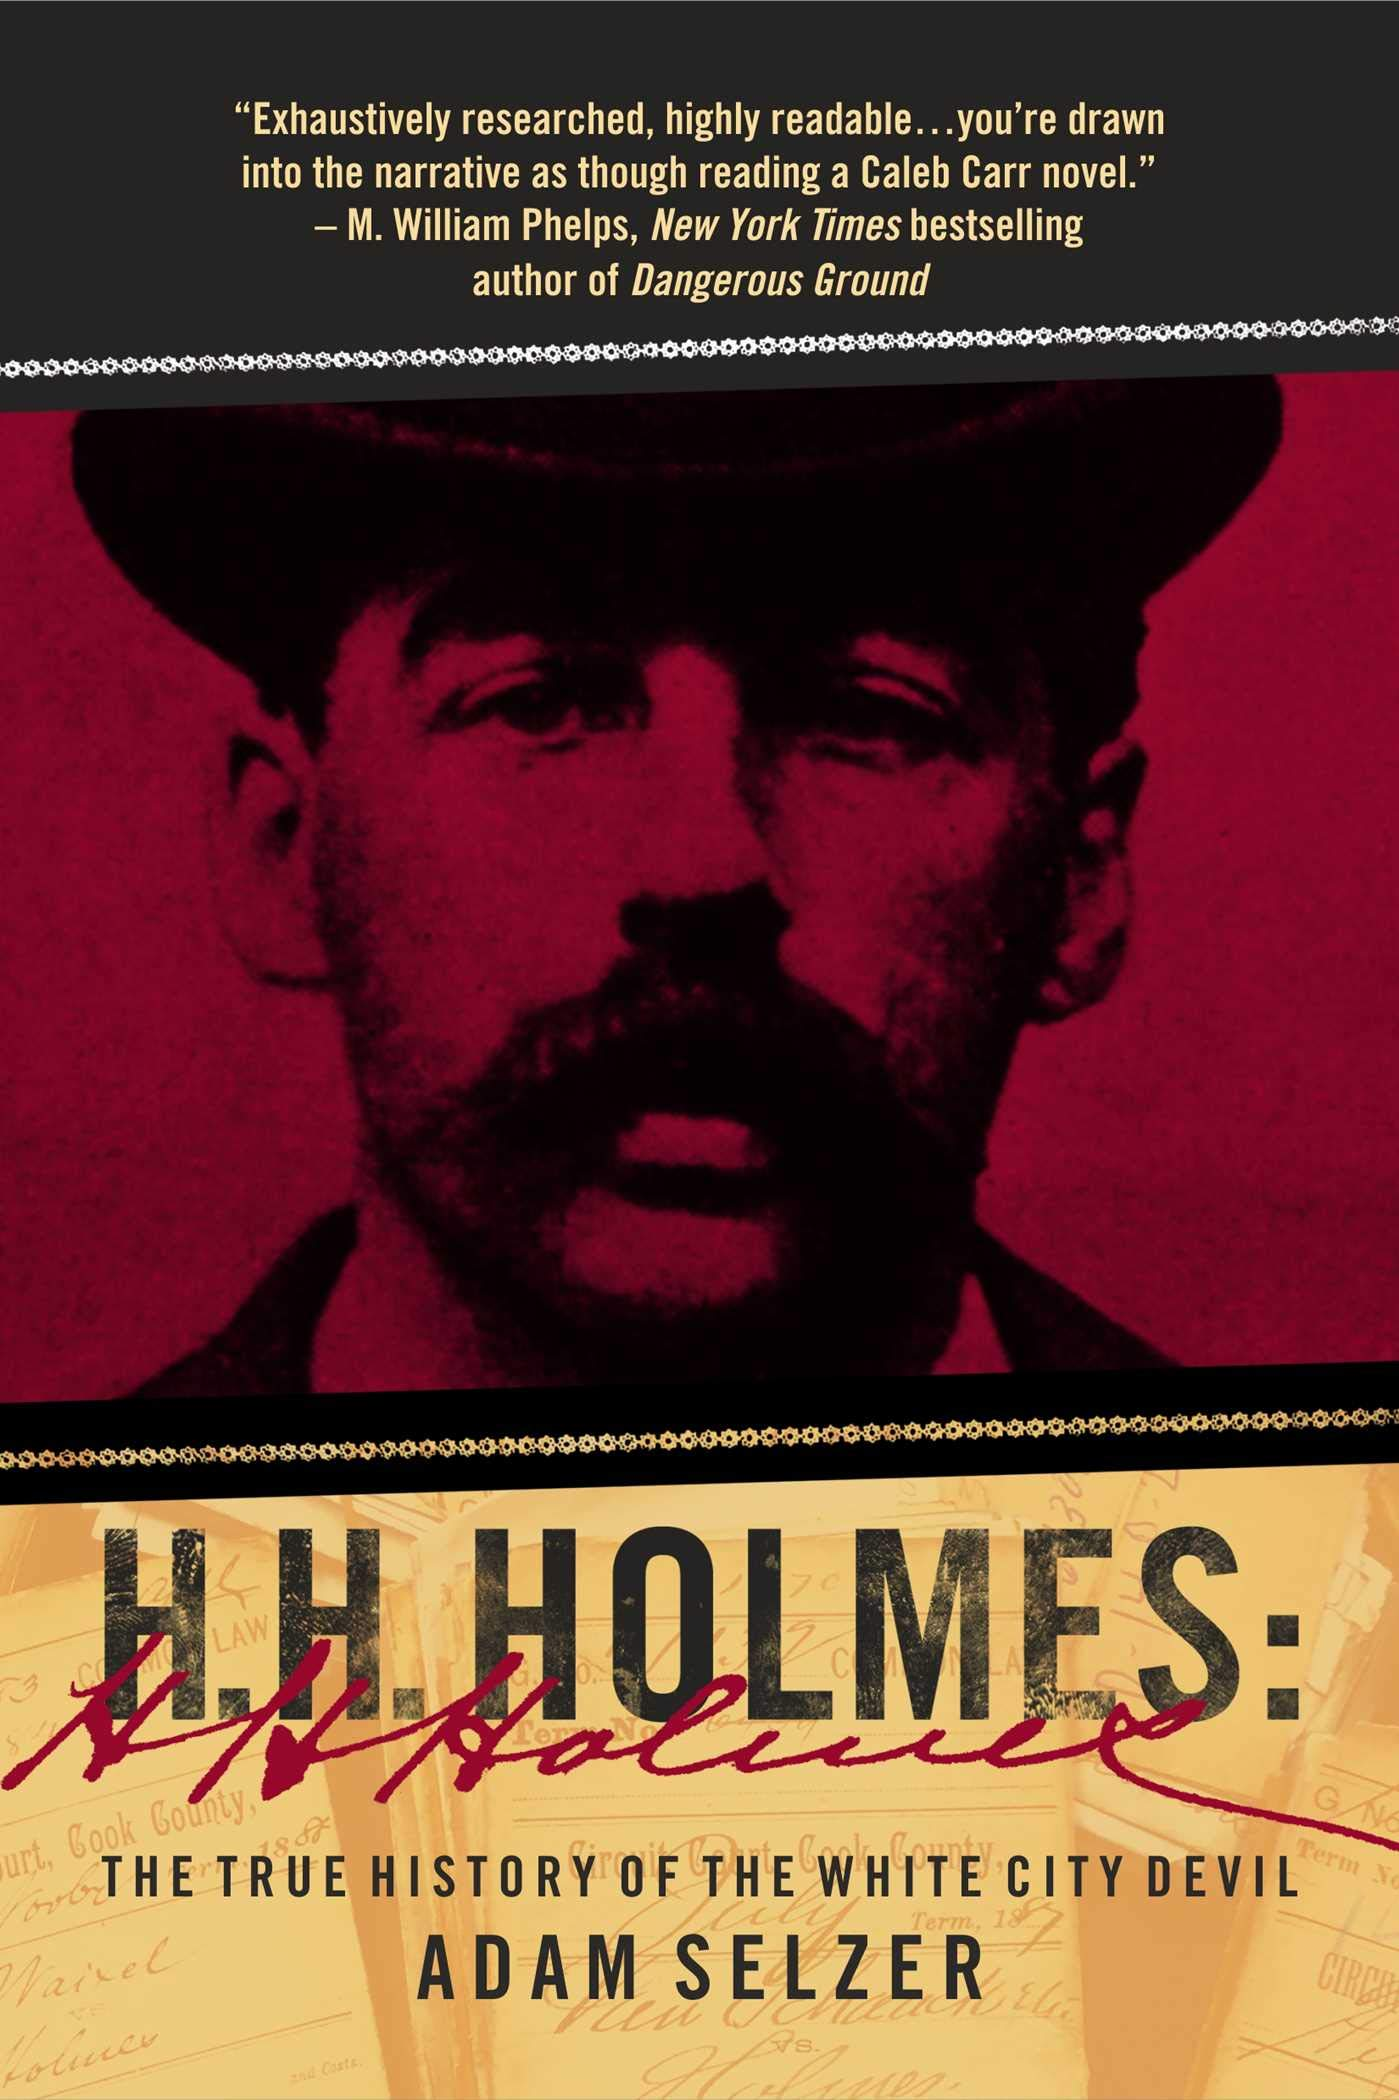 H. H. Holmes: The True History of the White City Devil: Adam Selzer:  9781510740846: Amazon.com: Books